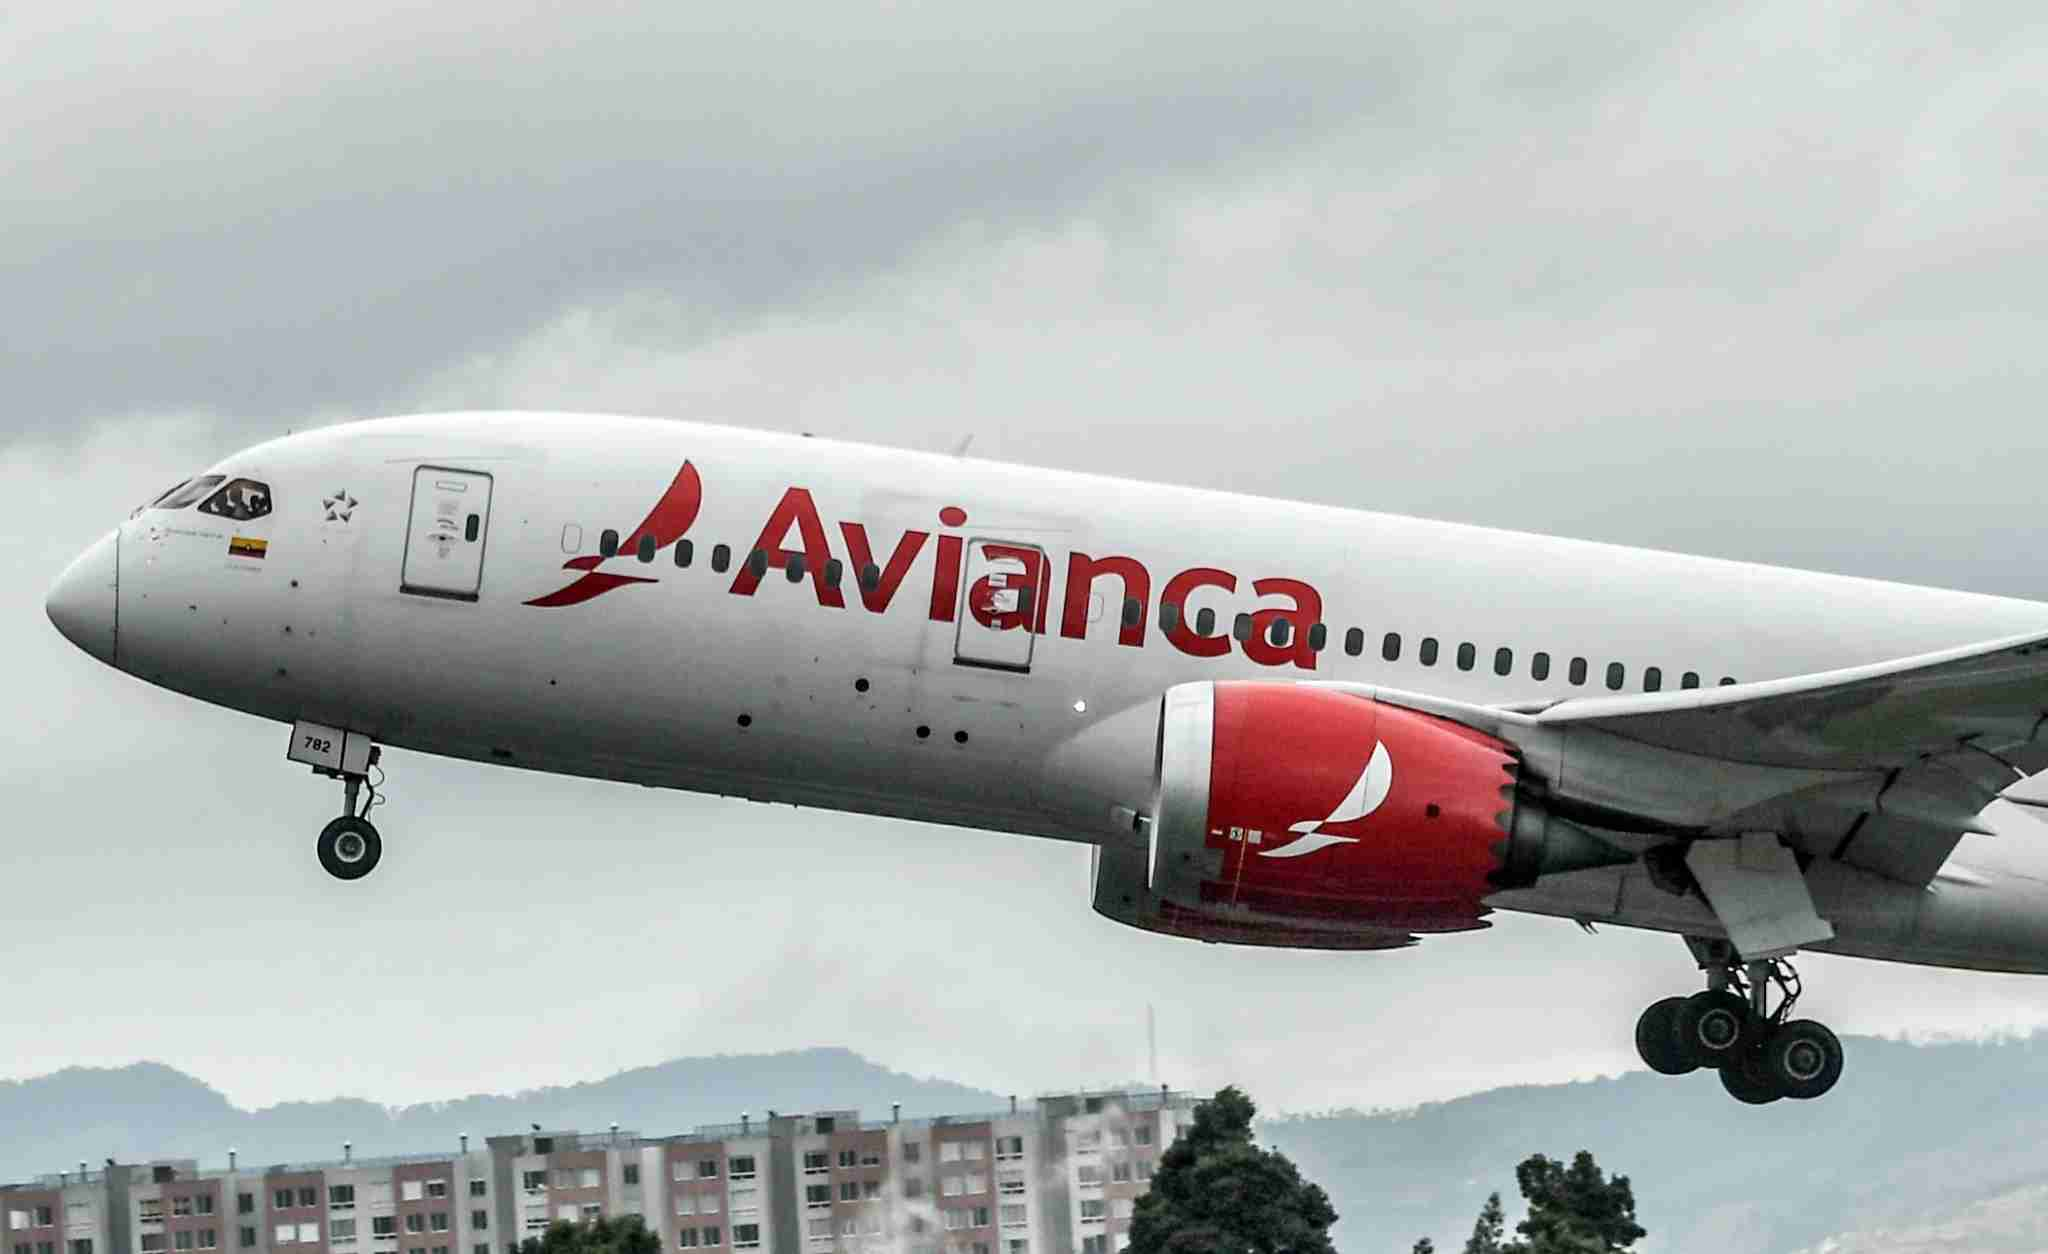 """An aircraft of Colombian company Avianca lands at El Dorado International Airport in Bogota on August 28, 2019. - Avianca Holdings, the largest airline in Colombia and the second largest in Latin America, denied being bankrupt on August 27 after a leaked video in which the president of the board of directors ensures that the company is """"broken"""" went viral in social media. (Photo by Juan BARRETO / AFP) (Photo credit should read JUAN BARRETO/AFP via Getty Images)"""